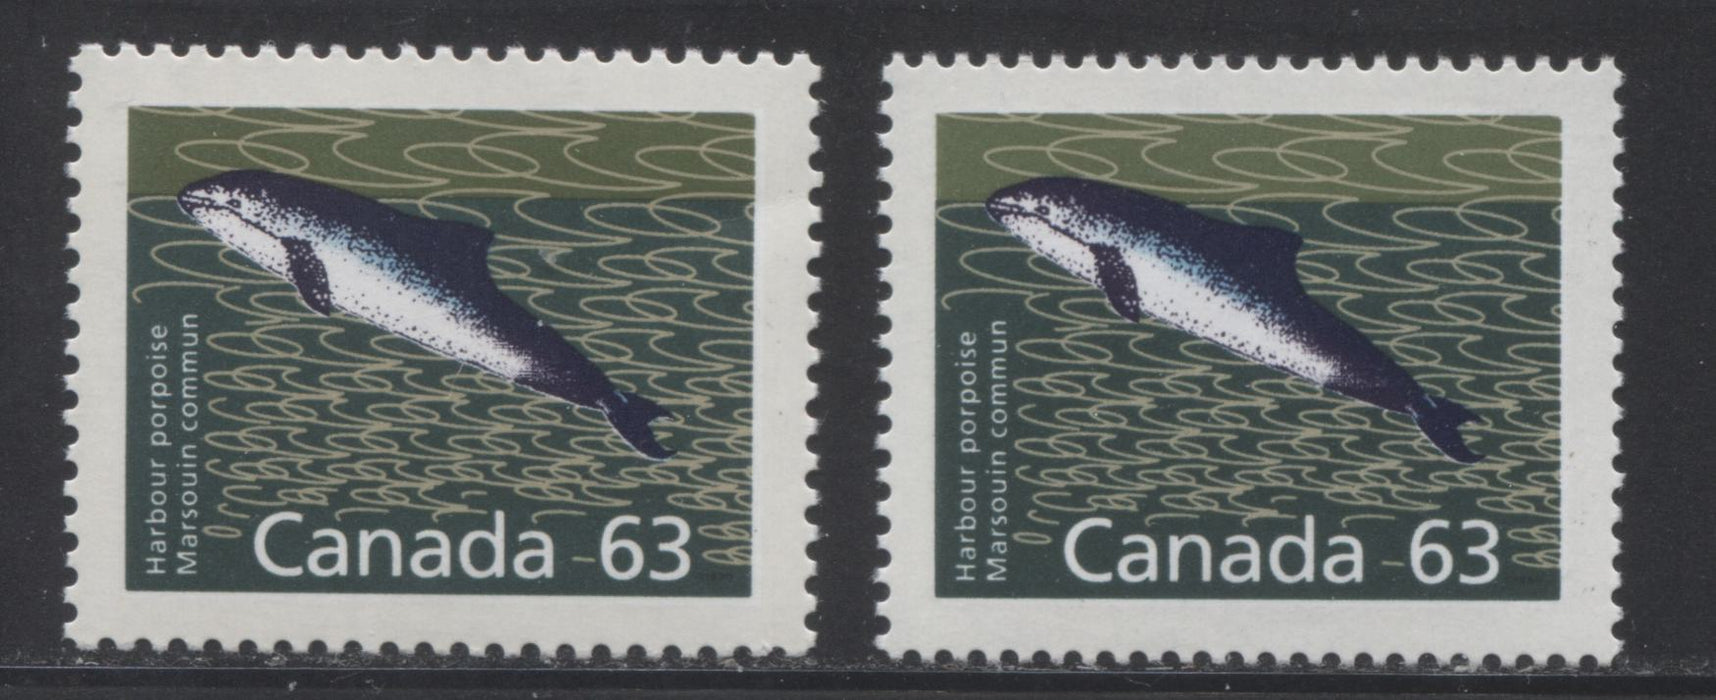 Canada #1176-1176a 63c Harbour Porpoise, 1988-1991 Wildlife and Architecture Issue, VFNH Examples of Both Perfs